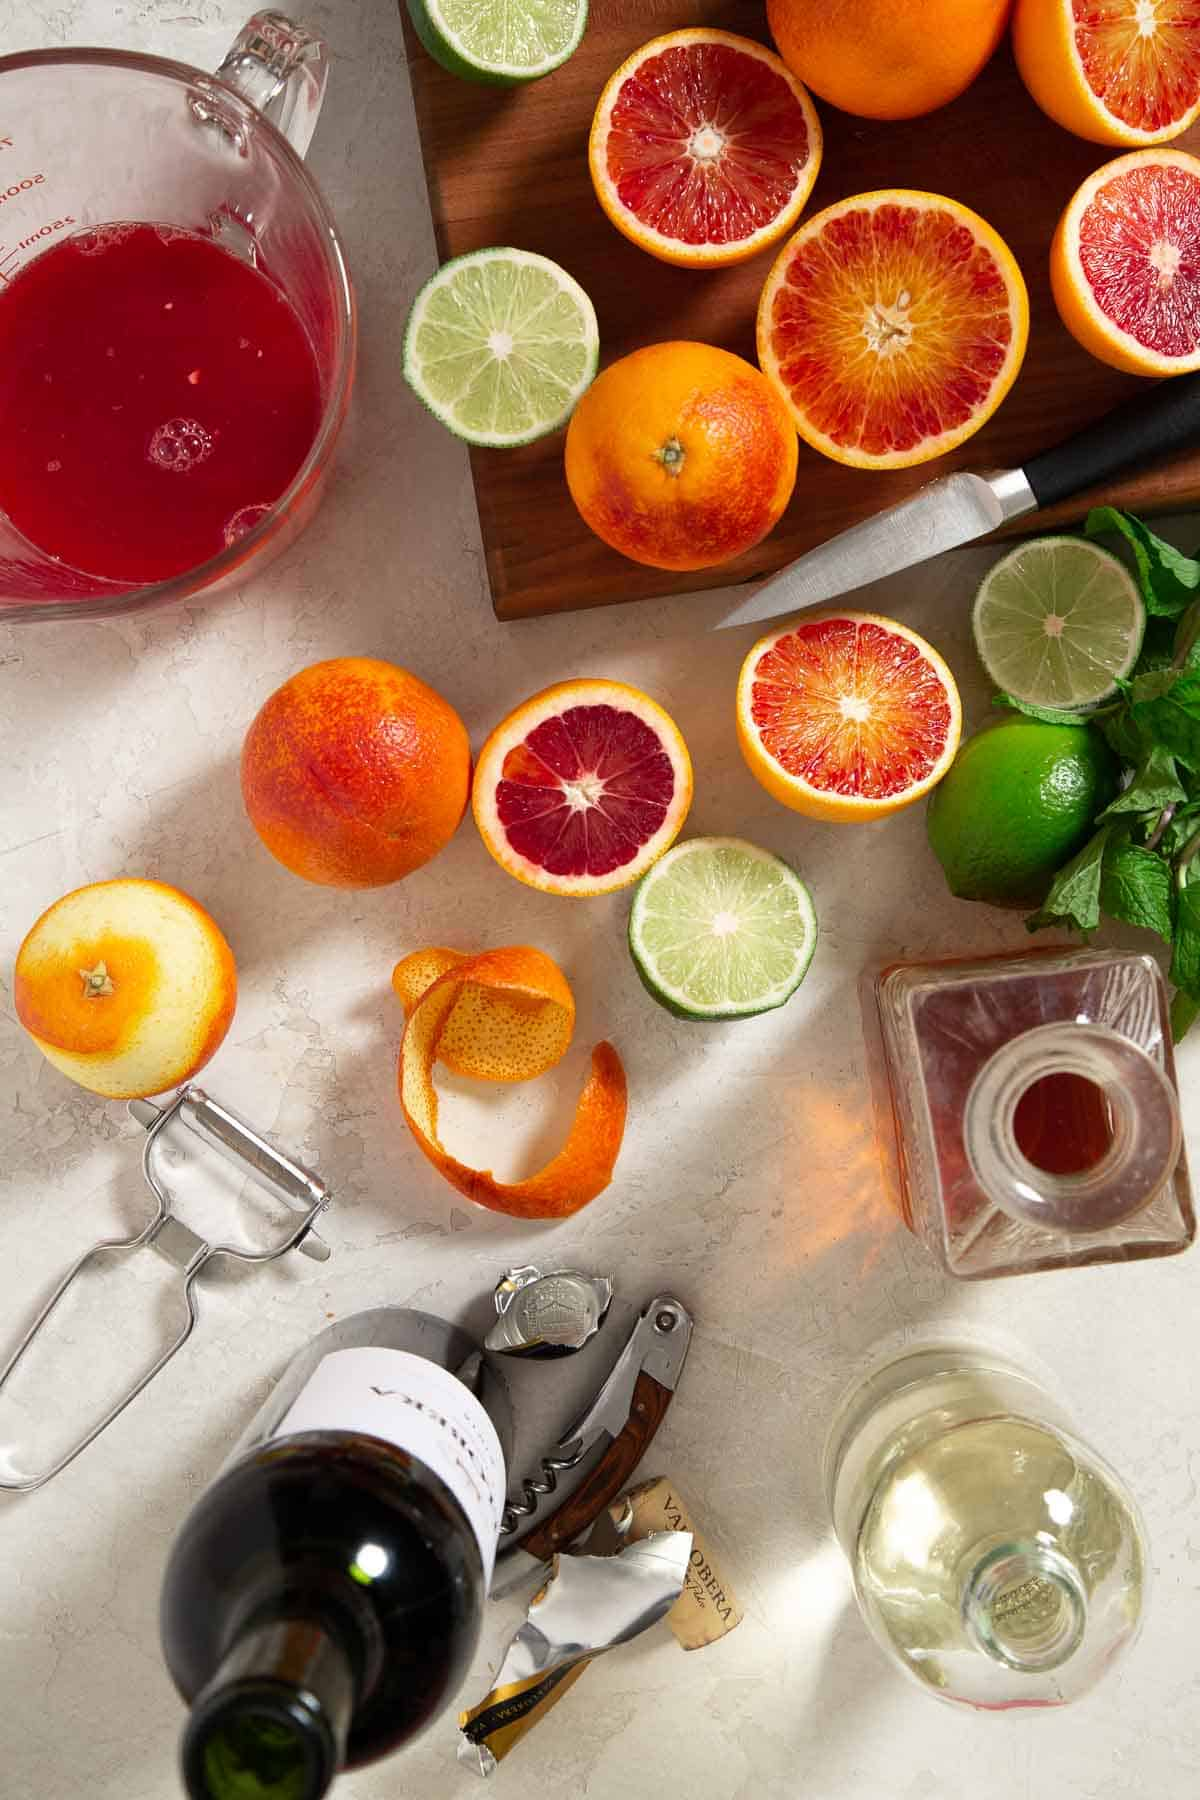 Overhead view of sliced oranges and limes next to bottles of liquor